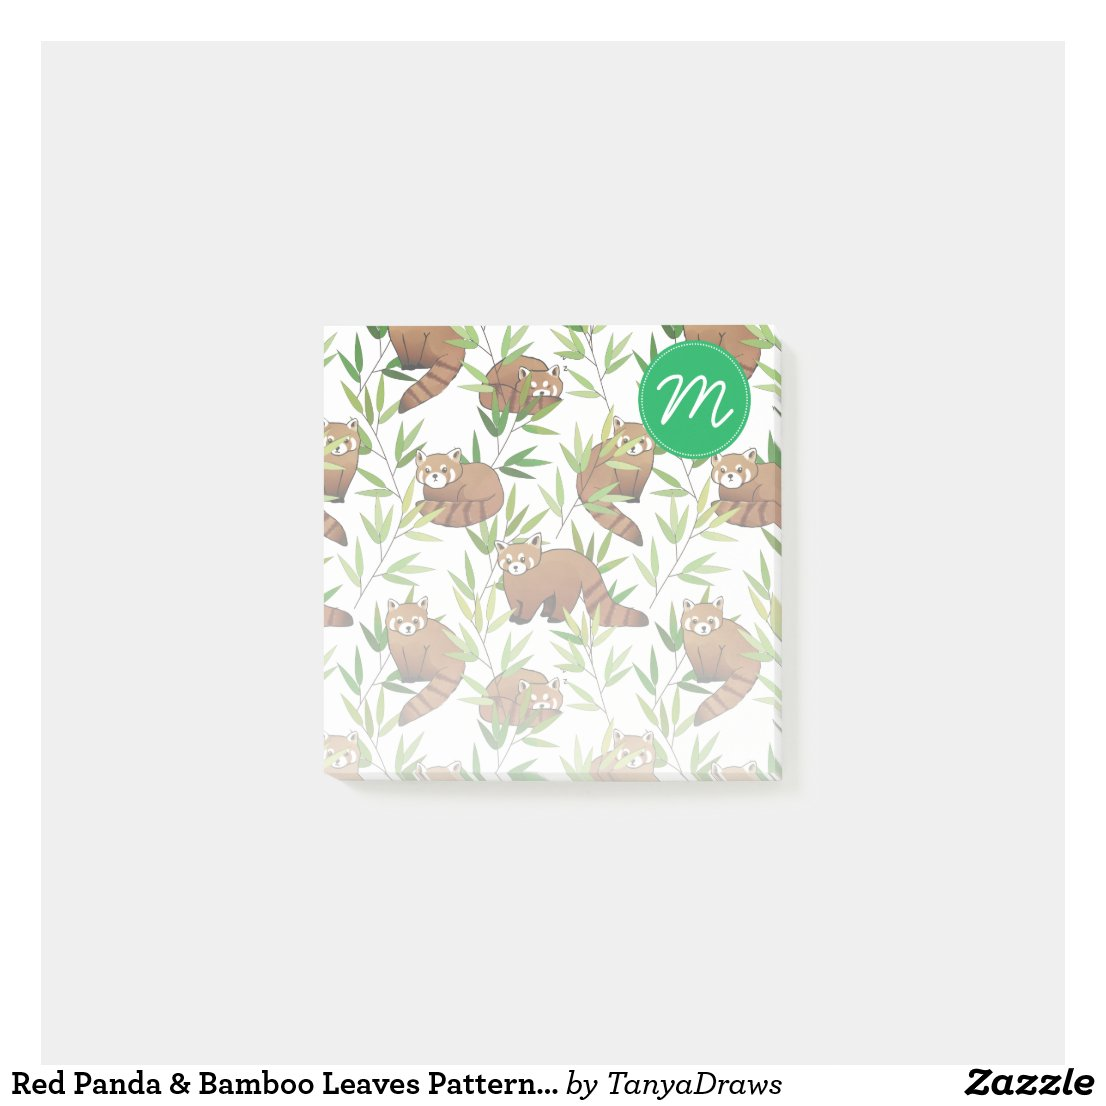 Red Panda & Bamboo Leaves Pattern & Monogram Post-it Notes